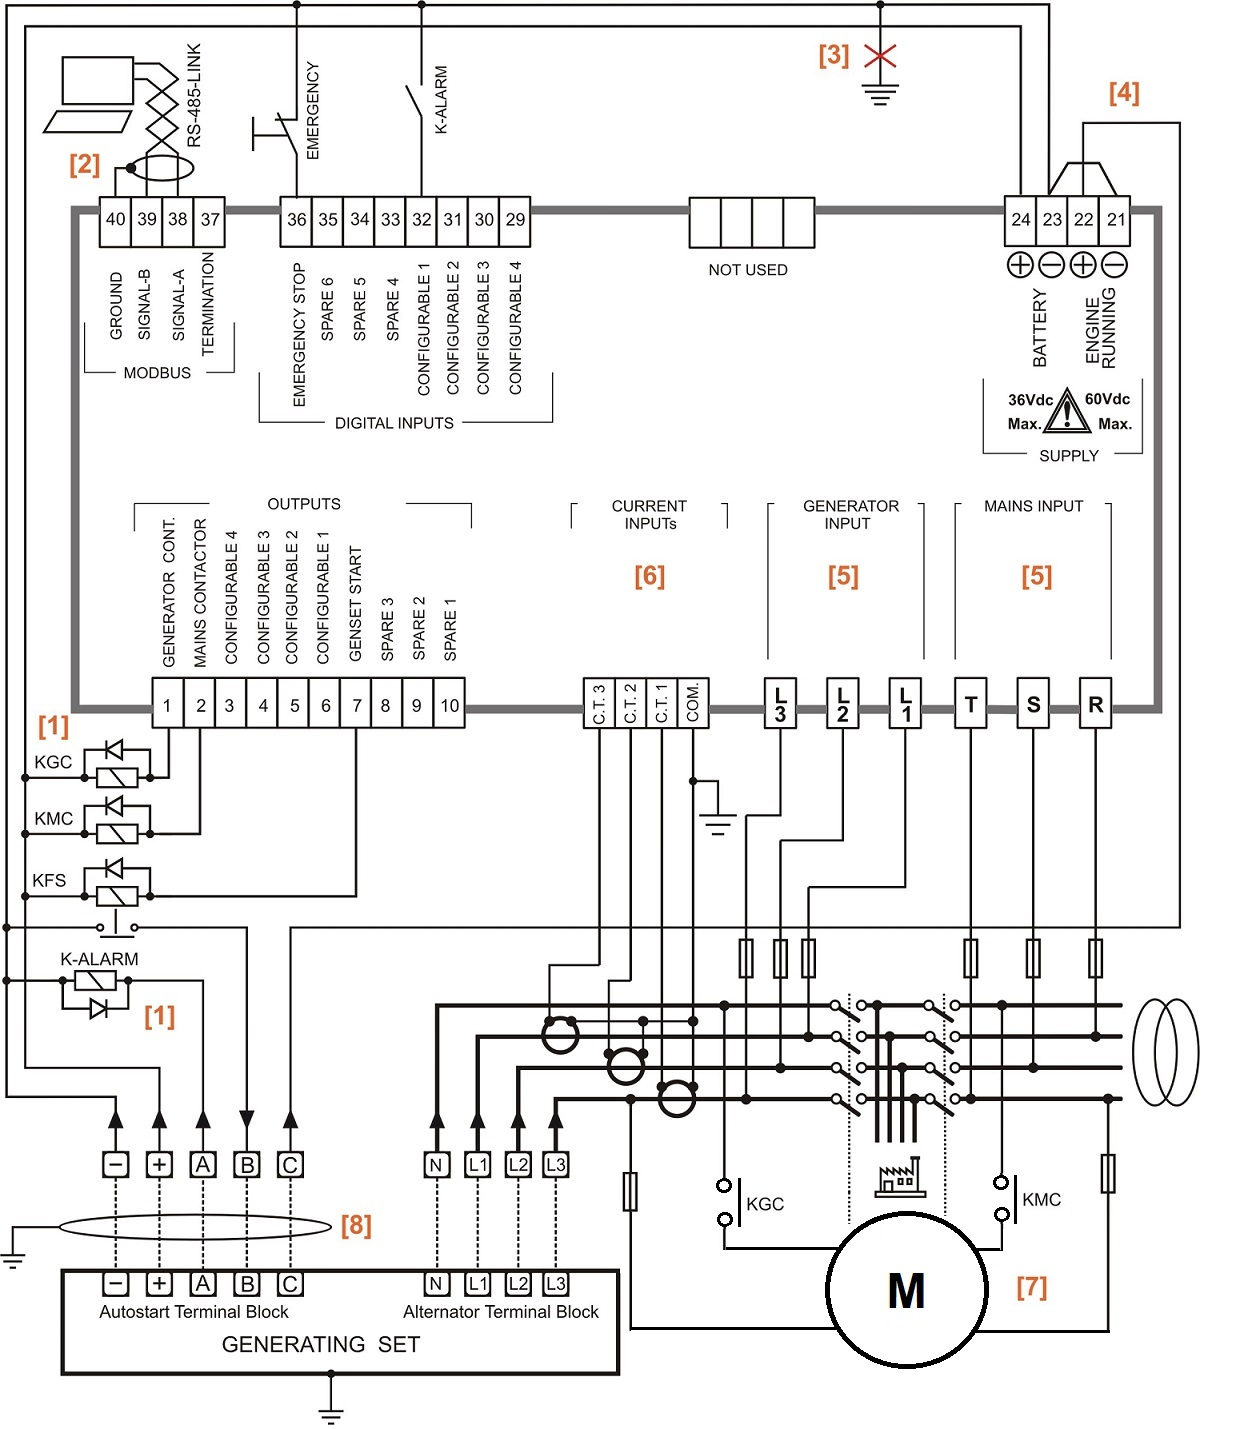 [DIAGRAM] Kohler Automatic Transfer Switch Wiring Diagram